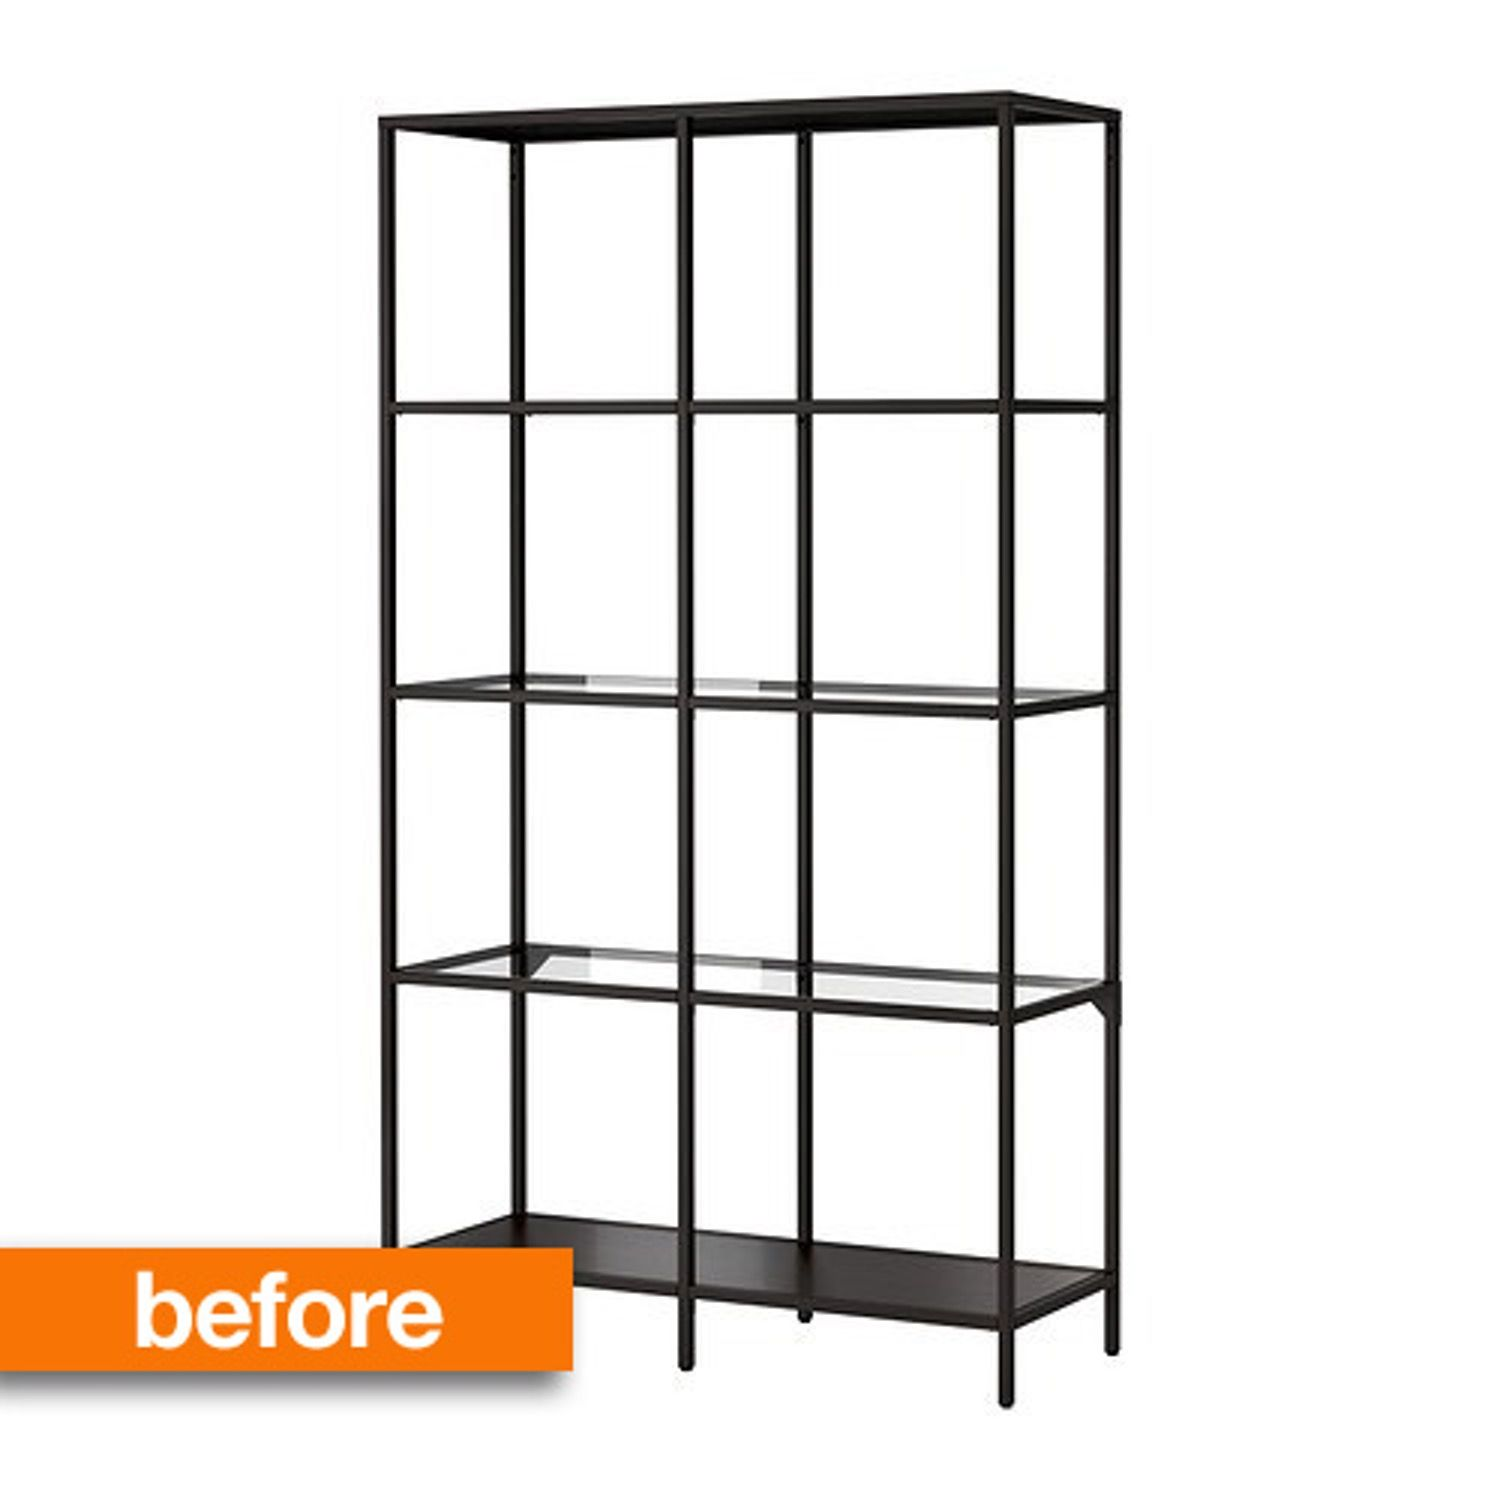 together with bookcases narrow bookcasecabinet zq along bookshelves as frame wells book round bookshelvesmetal for nifty posh red glass natural bookshe in bookcase cheerful metal ikea bookshelf shelf